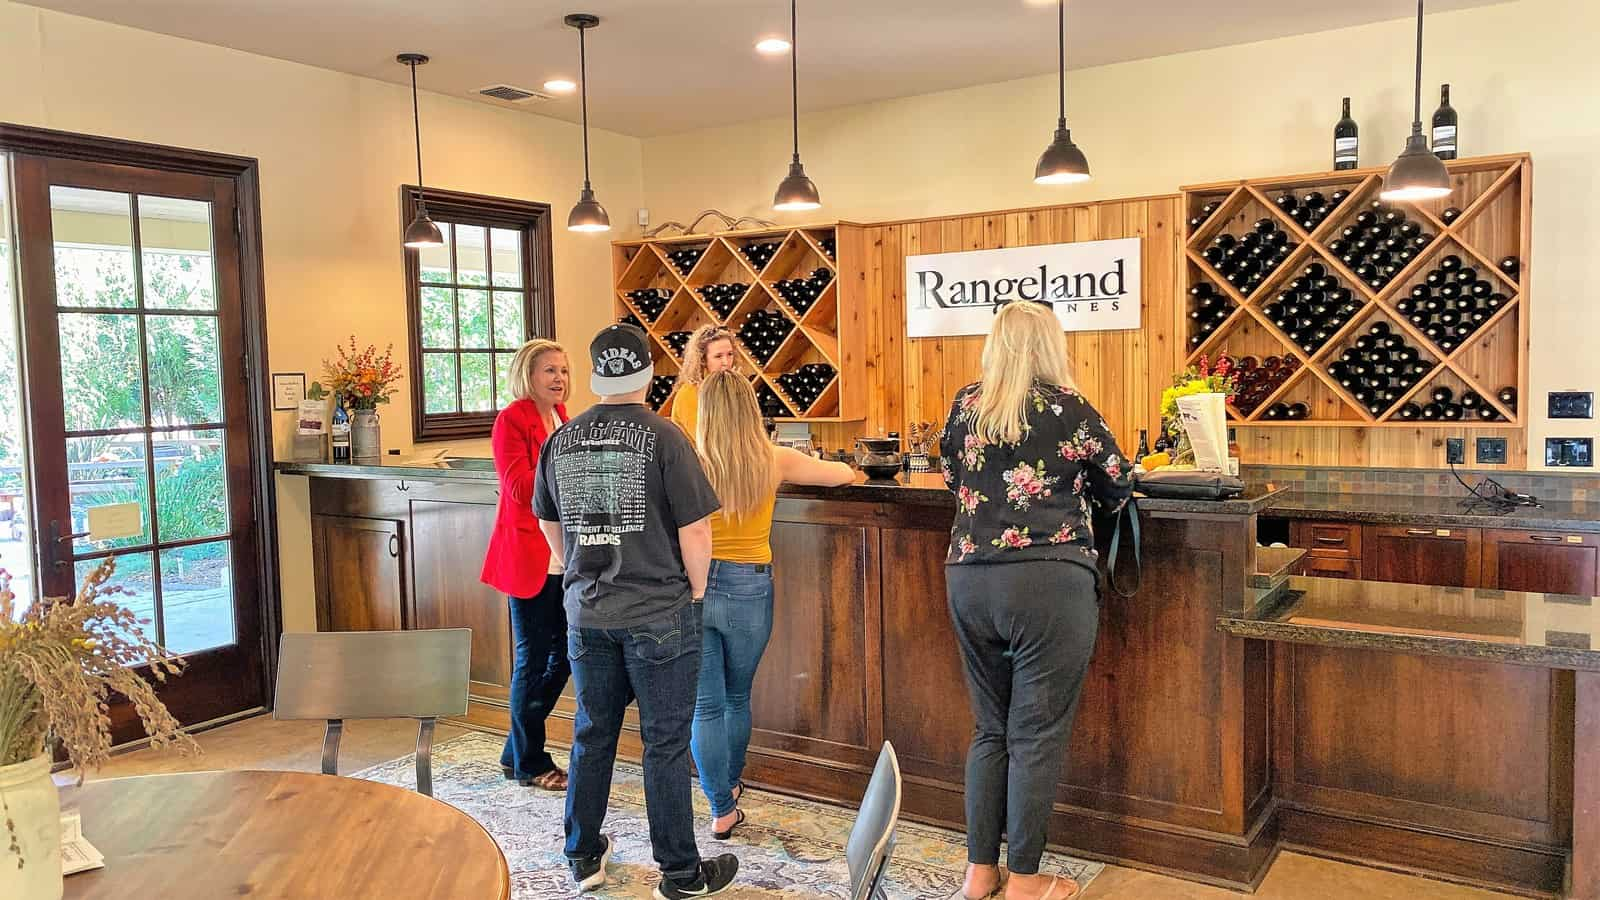 Rangeland winery